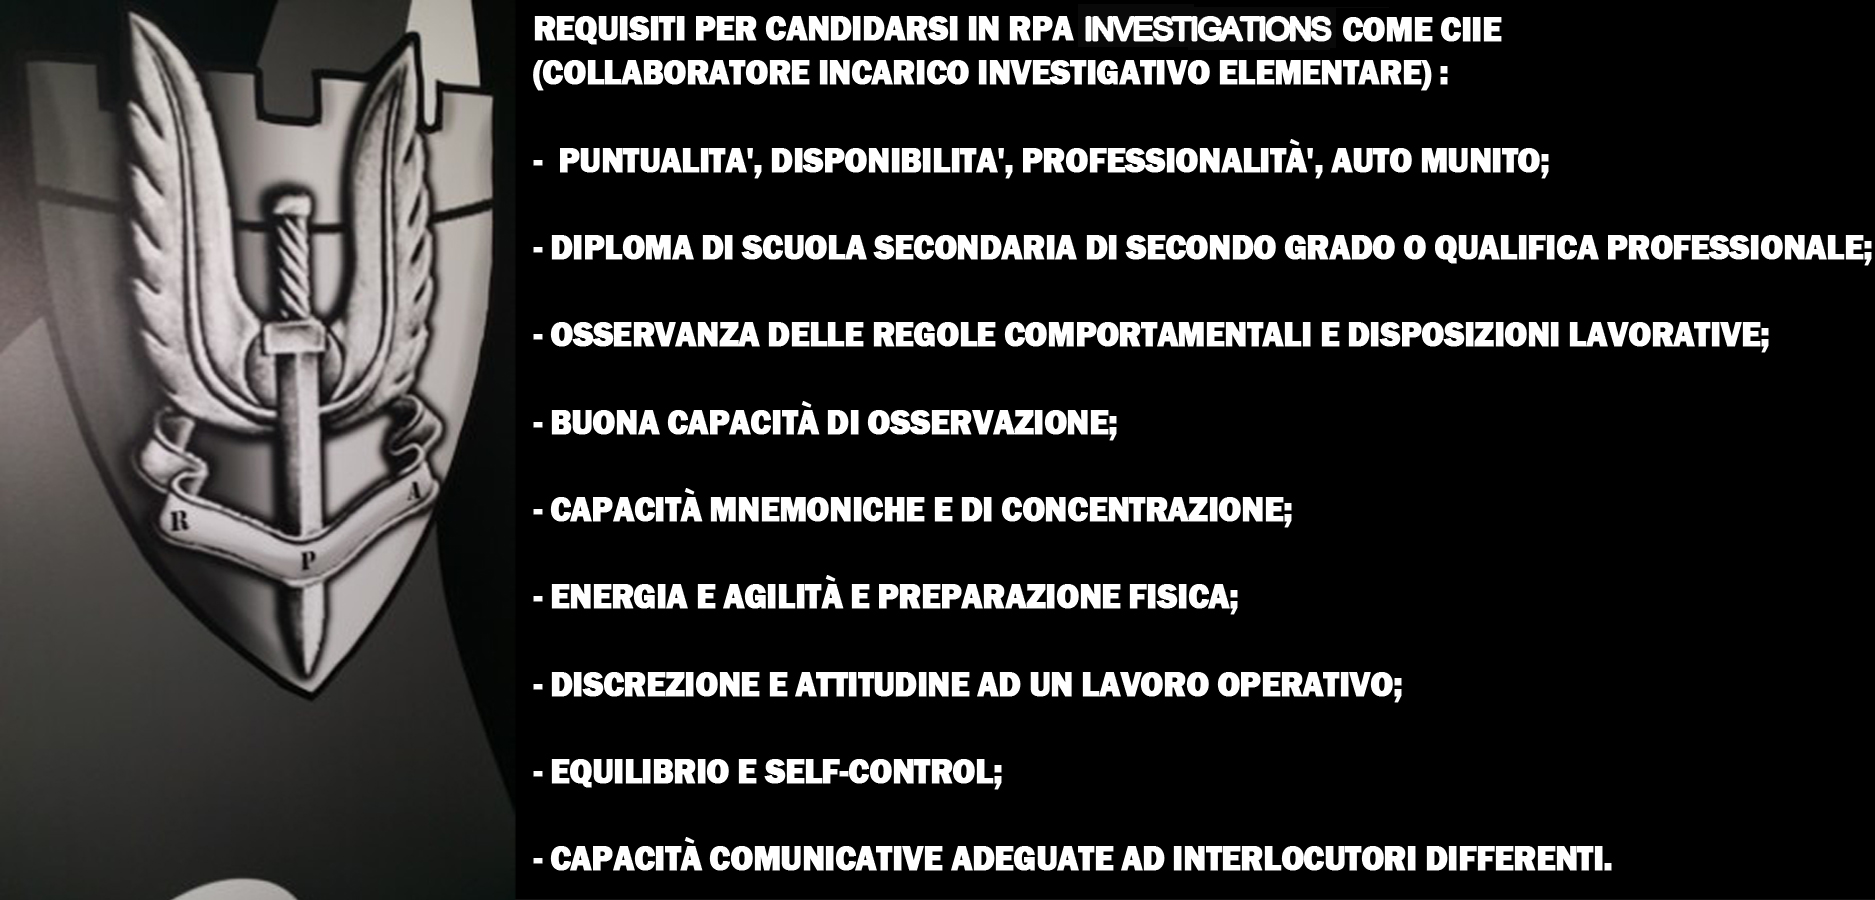 Lavora Con Noi Real Protection Agency Investigations S R L